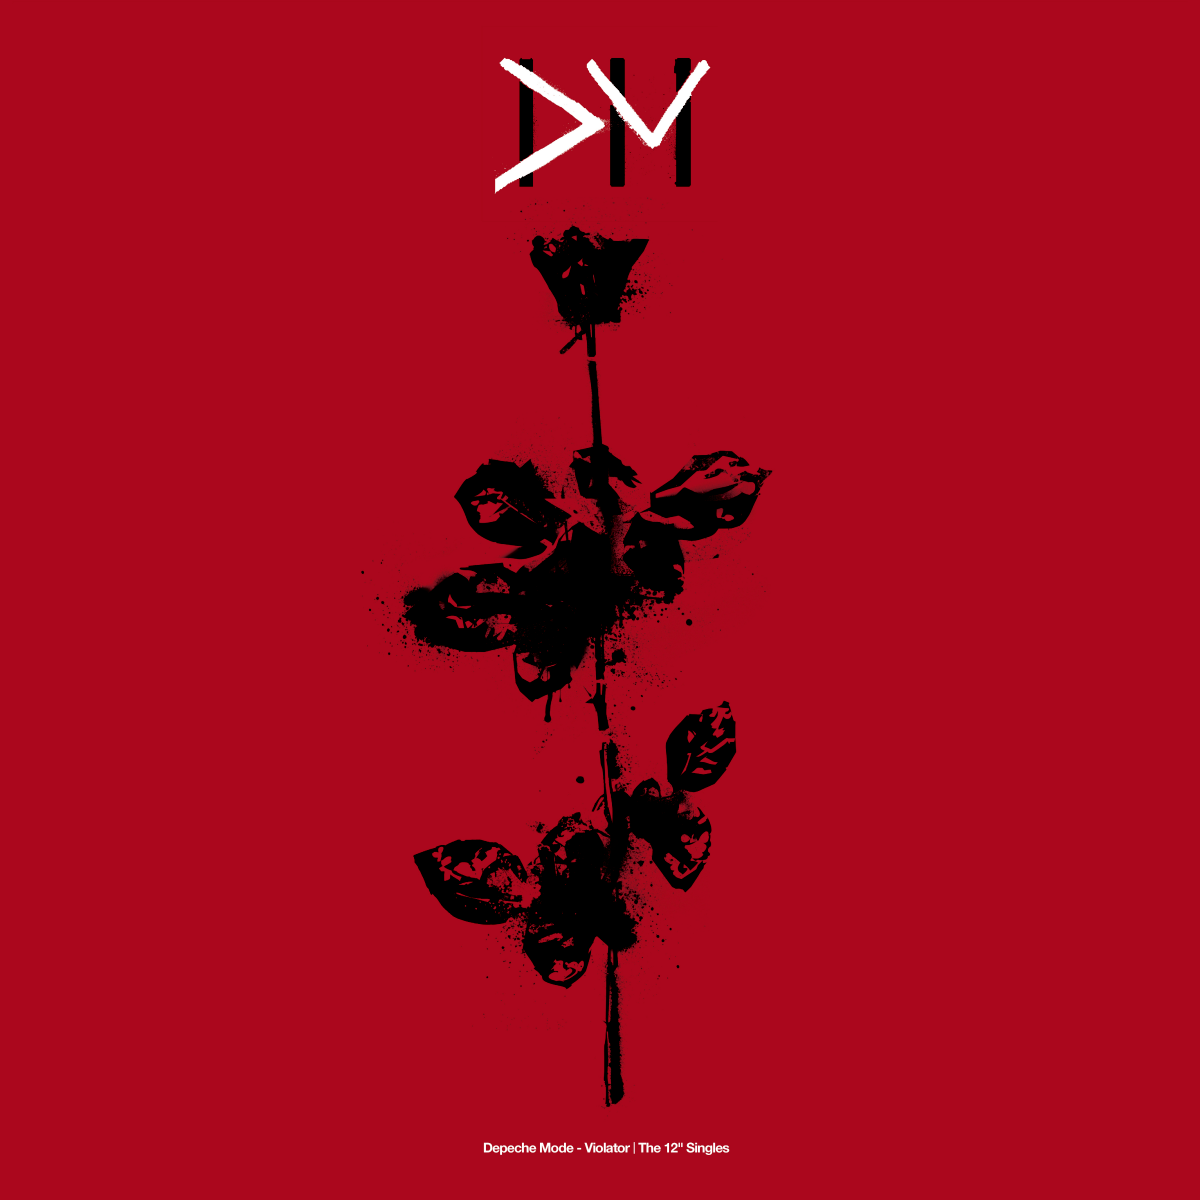 "Depeche Mode - Violator: The 12"" Singles -"